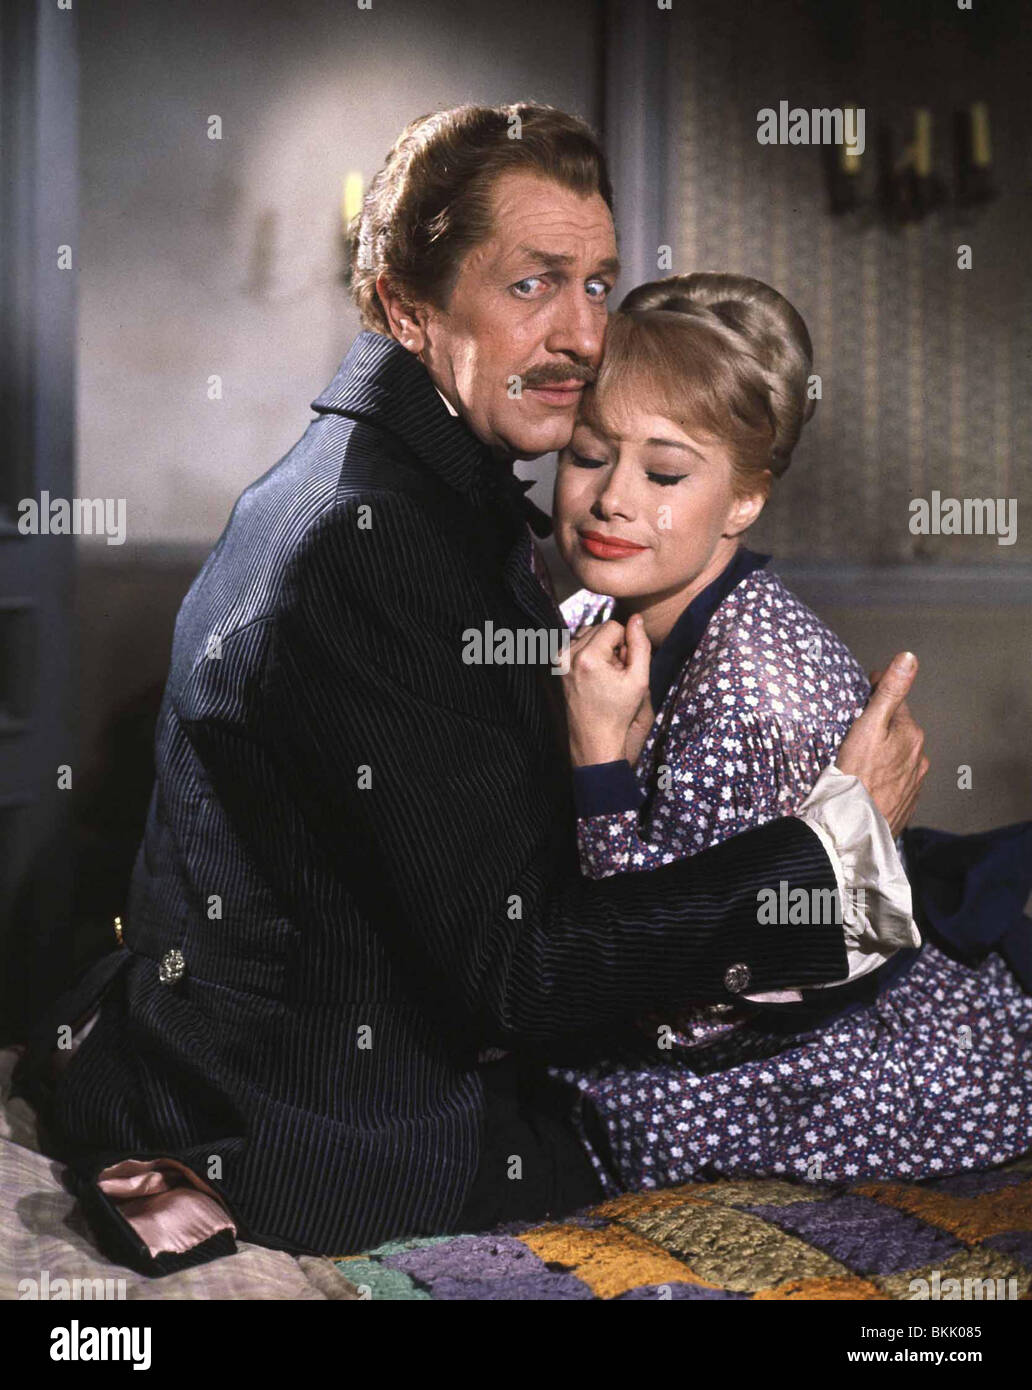 TALES OF TERROR (1962) VINCENT PRICE TTOR 001-01 - Stock Image